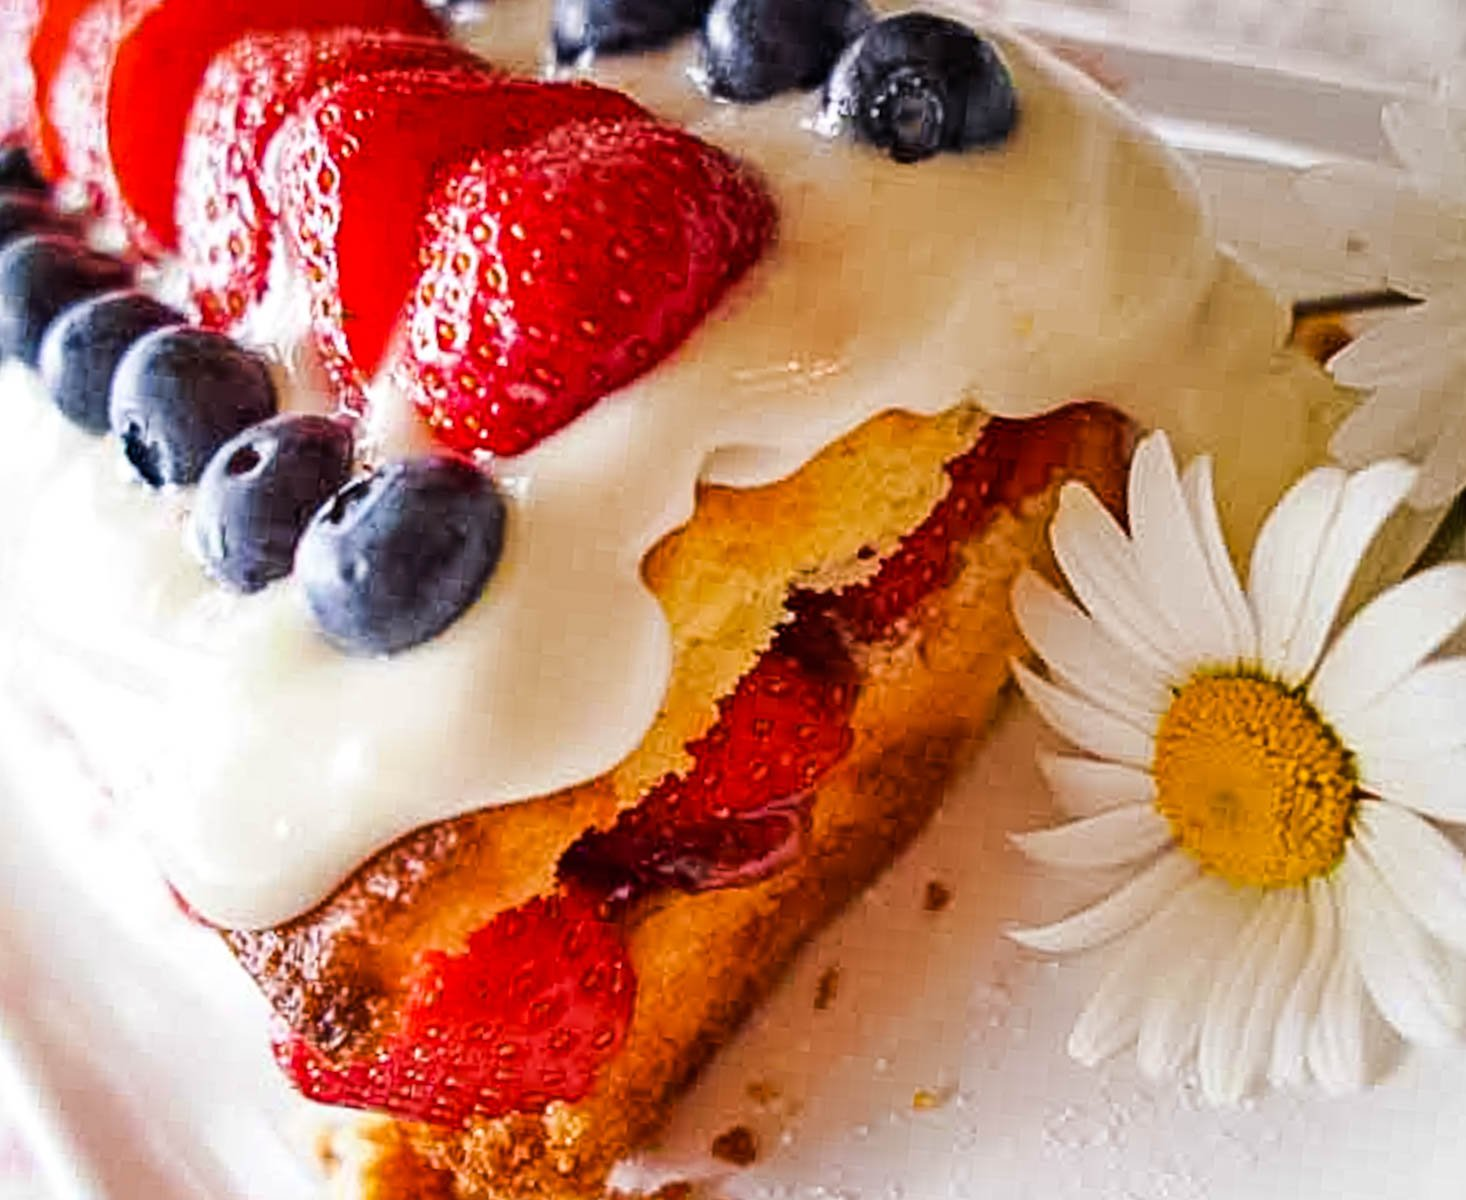 close up of the cake with berries